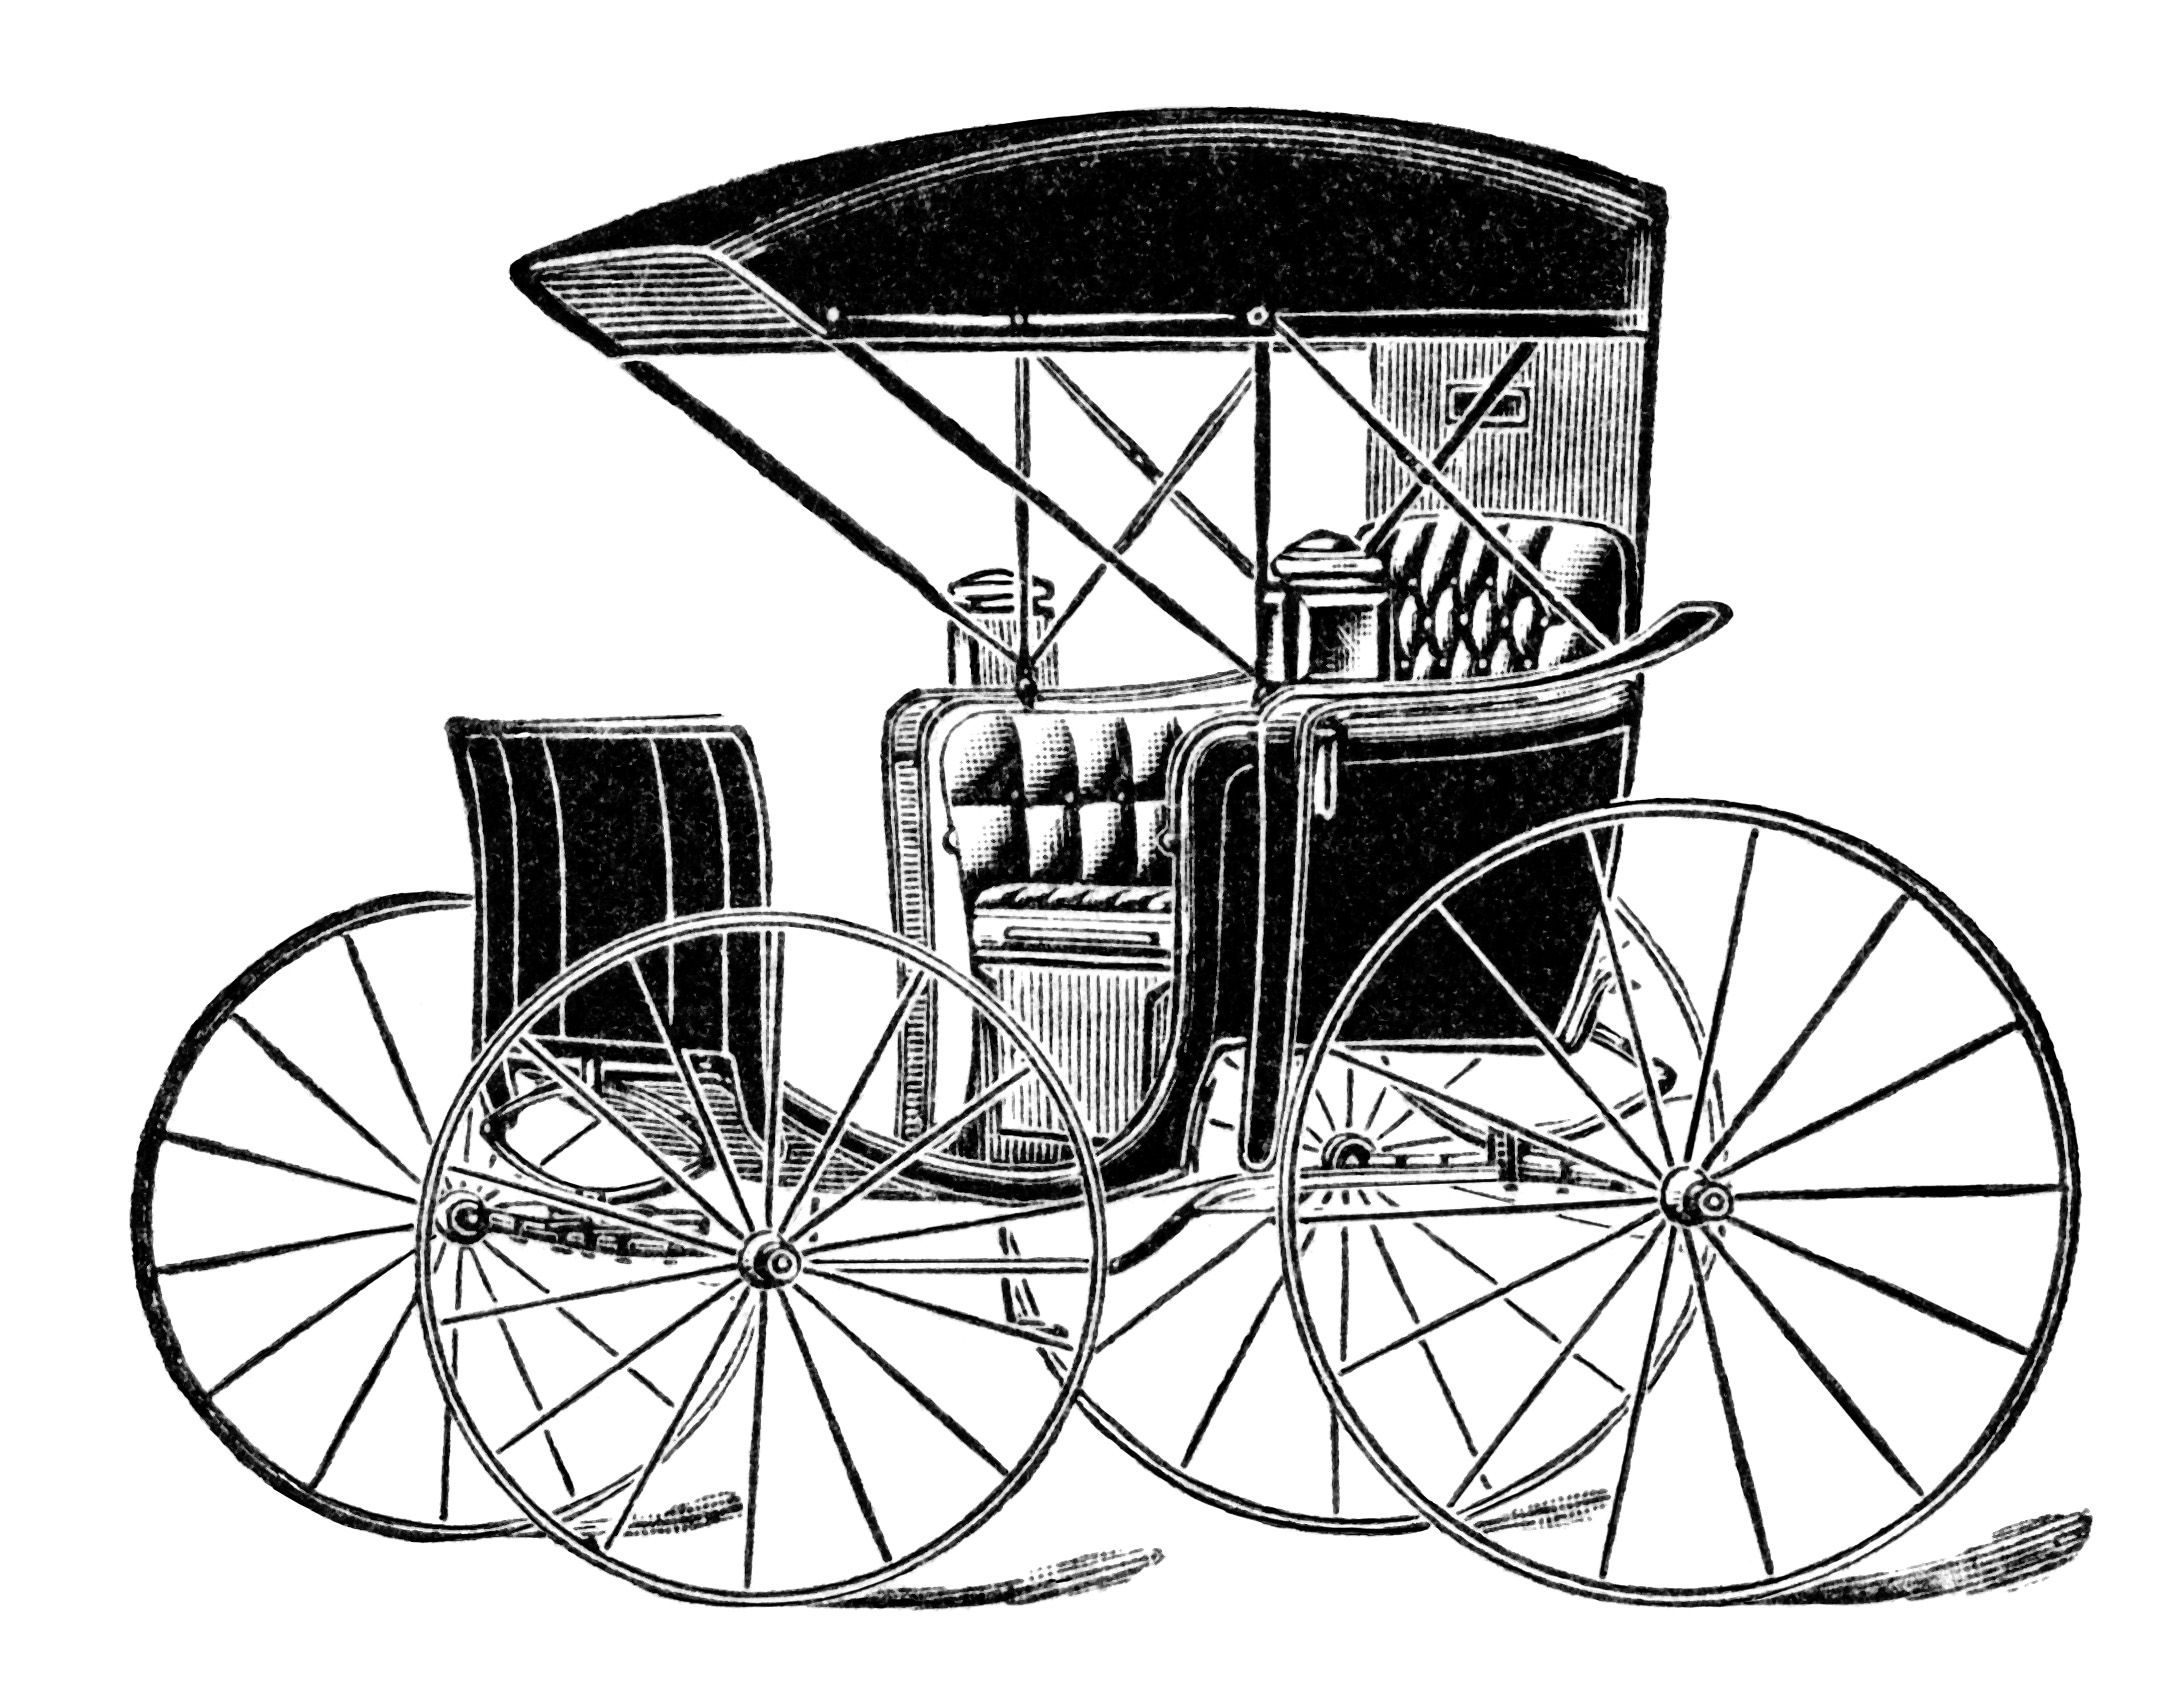 2172x1692 Horse Drawn Carriage Clip Art, Vintage Transportation Image, Black